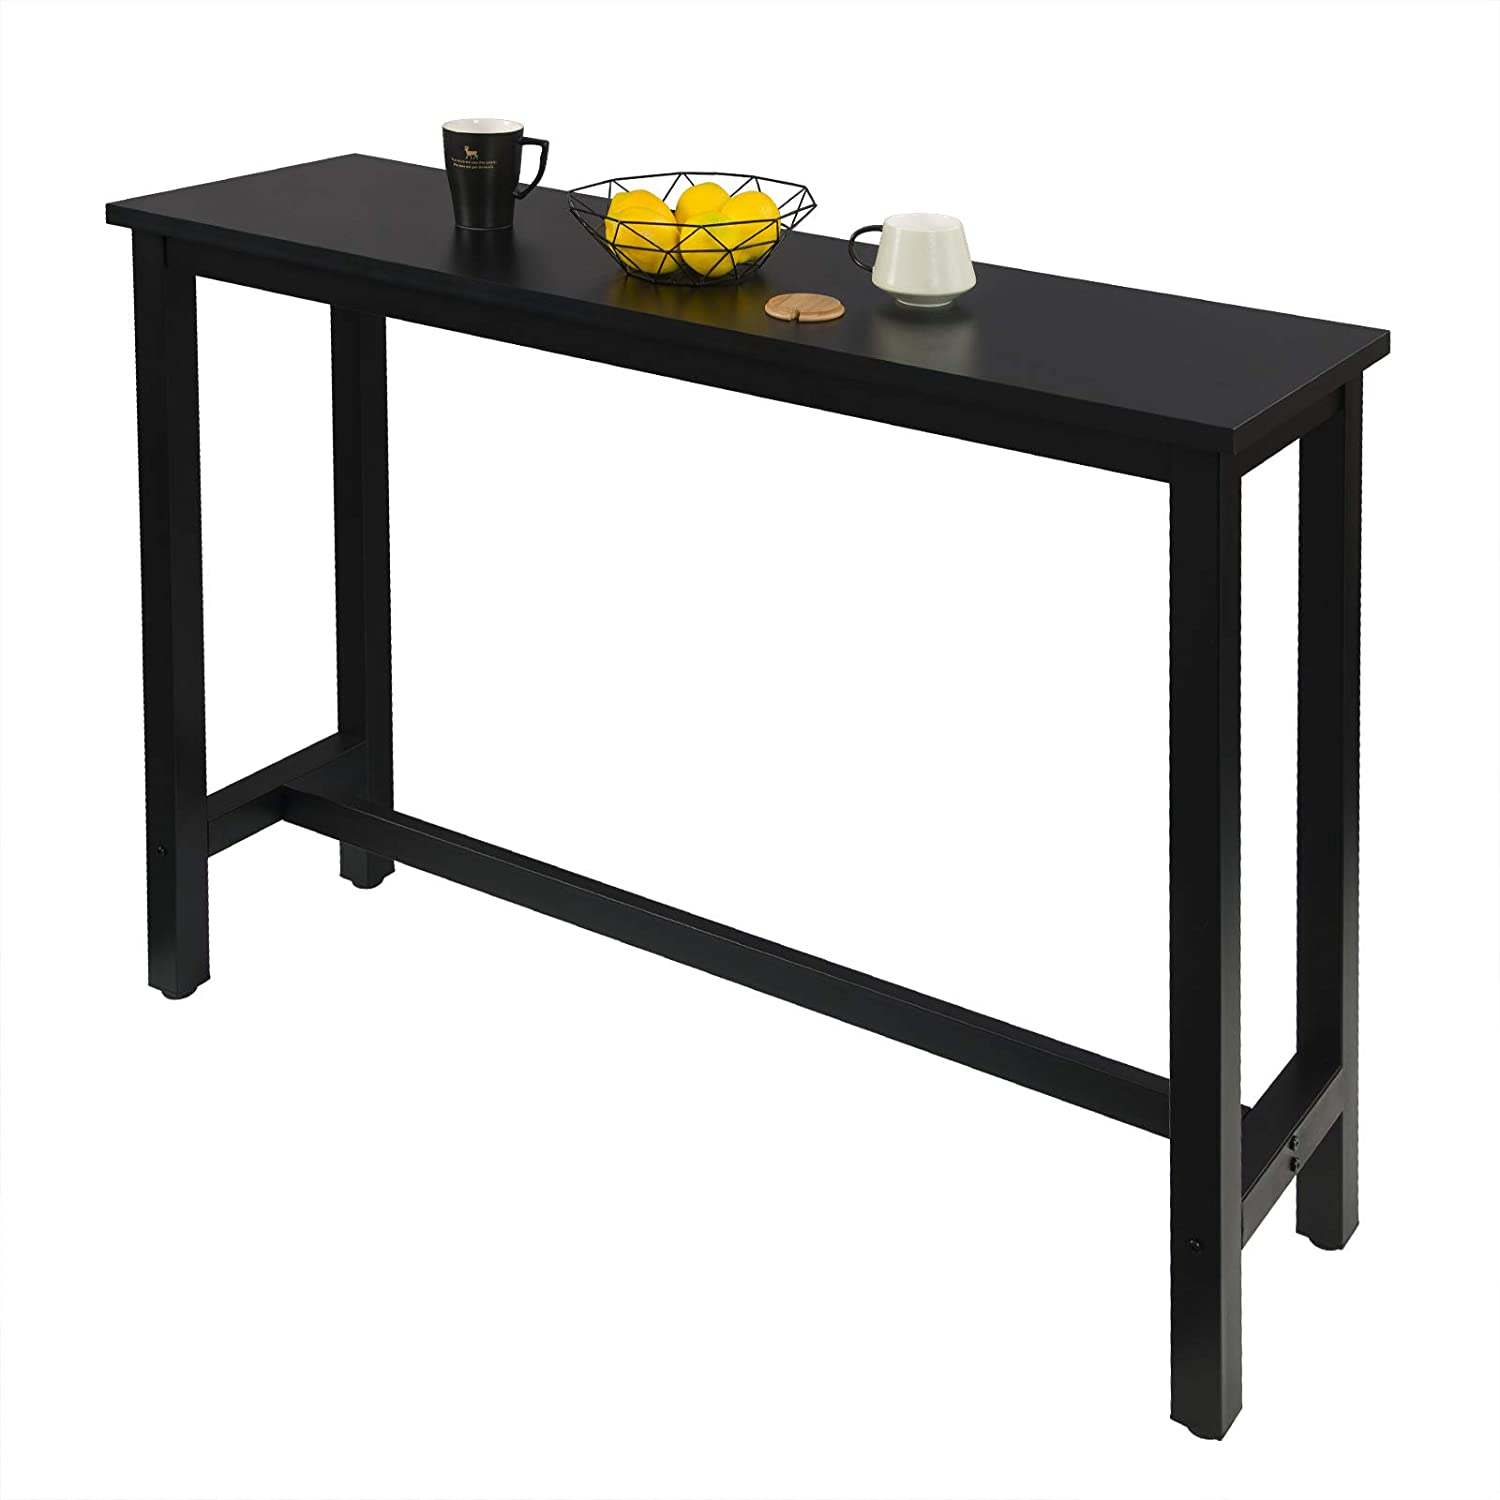 140x40x100cm WOLTU Kitchen Bar Table Breakfast Dining Table Black Coffee Table Party Table Metal in Black Frame with Footrest